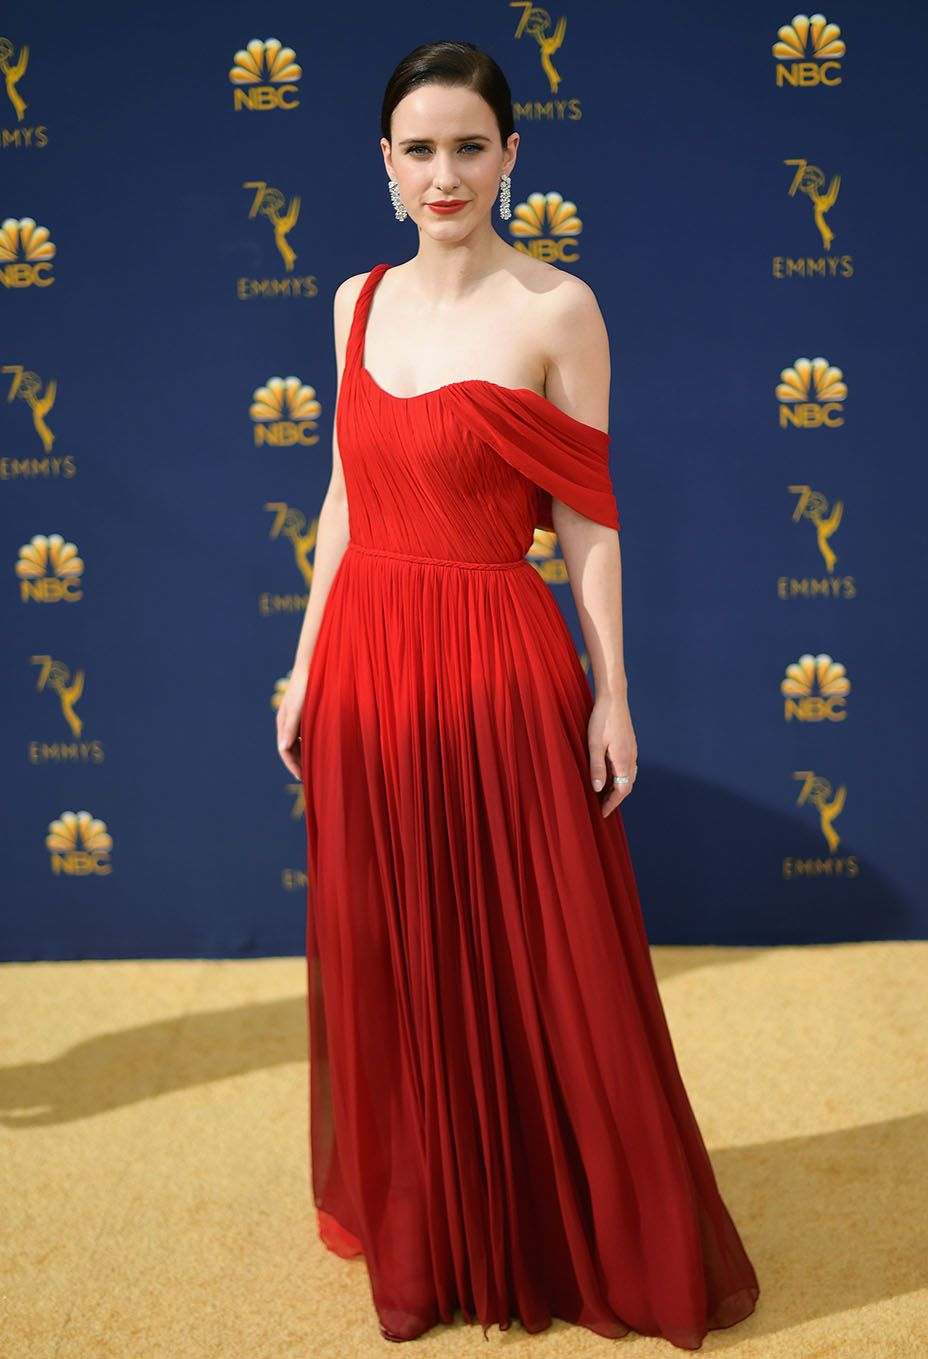 2c12902336 Every Single Look From the 2018 Emmy Awards Red Carpet in 2019 ...